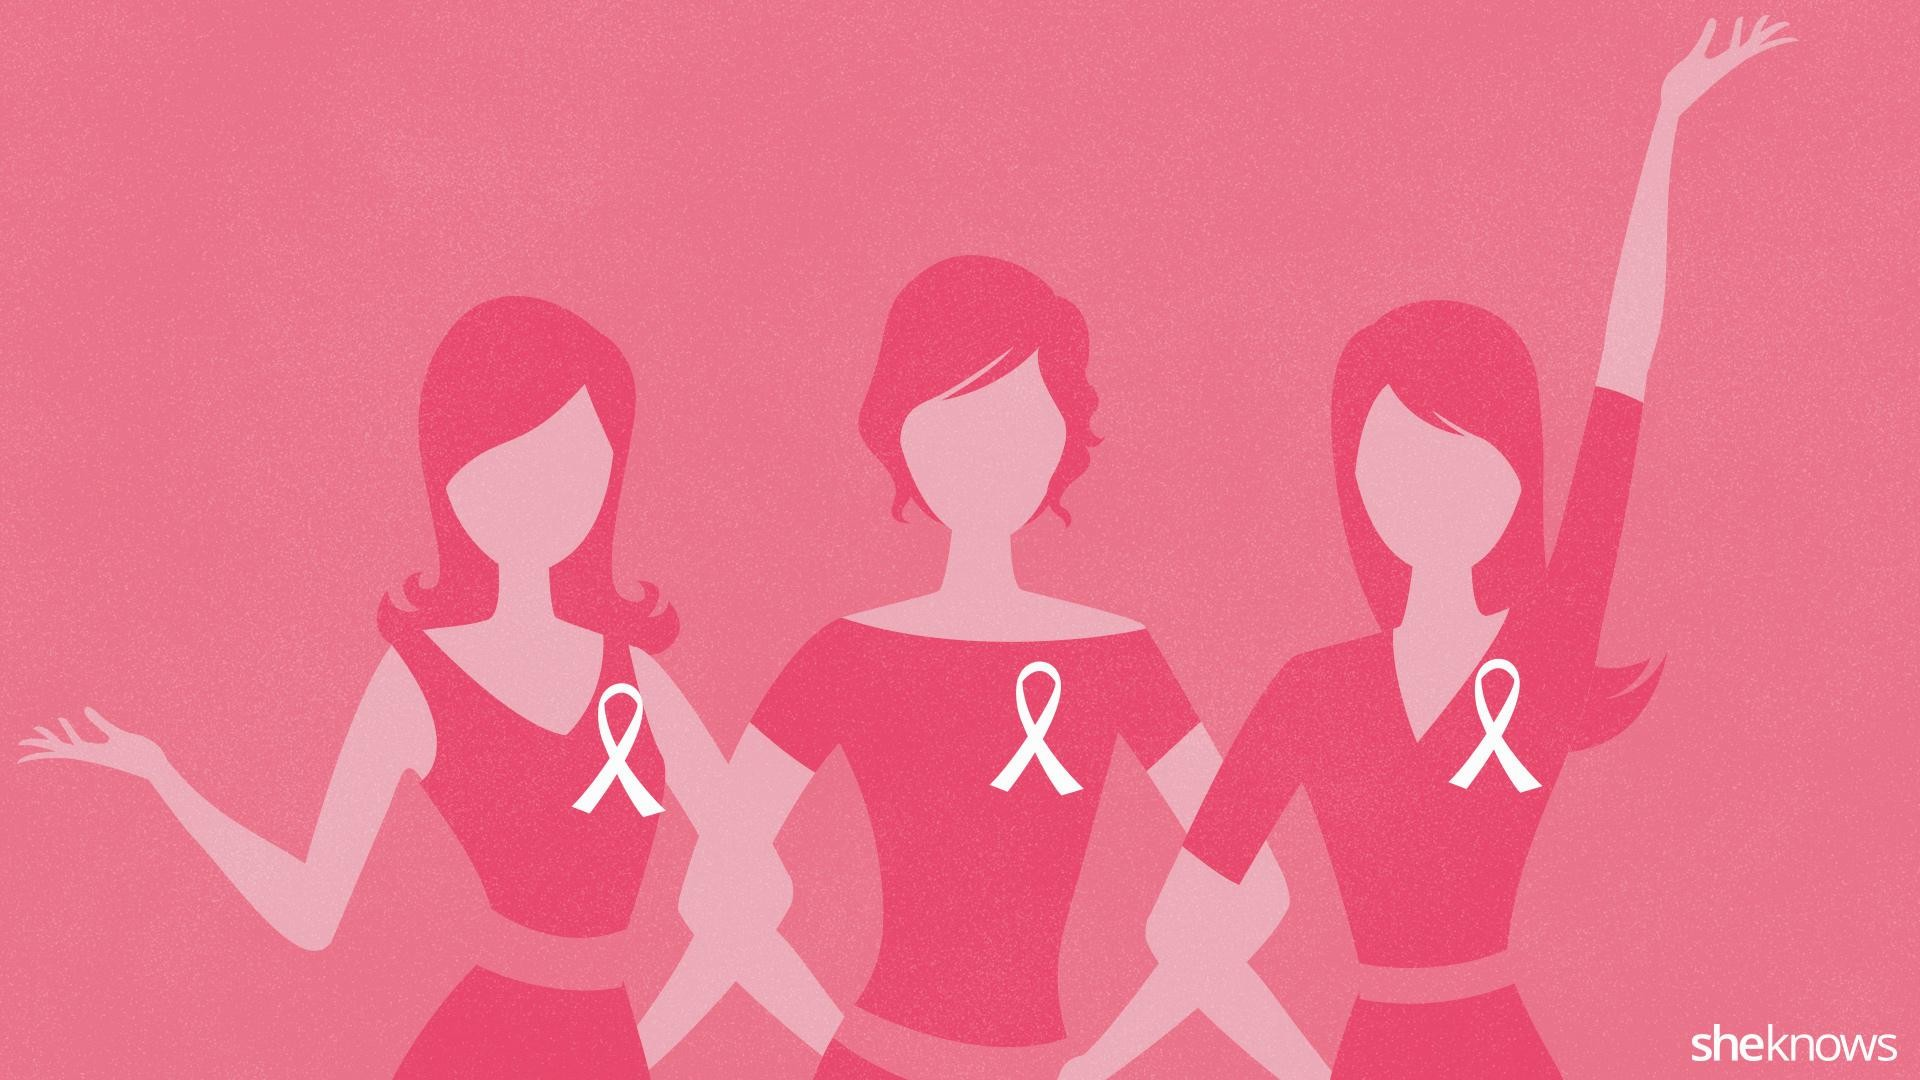 Breast Cancer Awareness Backgrounds HD Wallpapers Download Free Images Wallpaper [1000image.com]